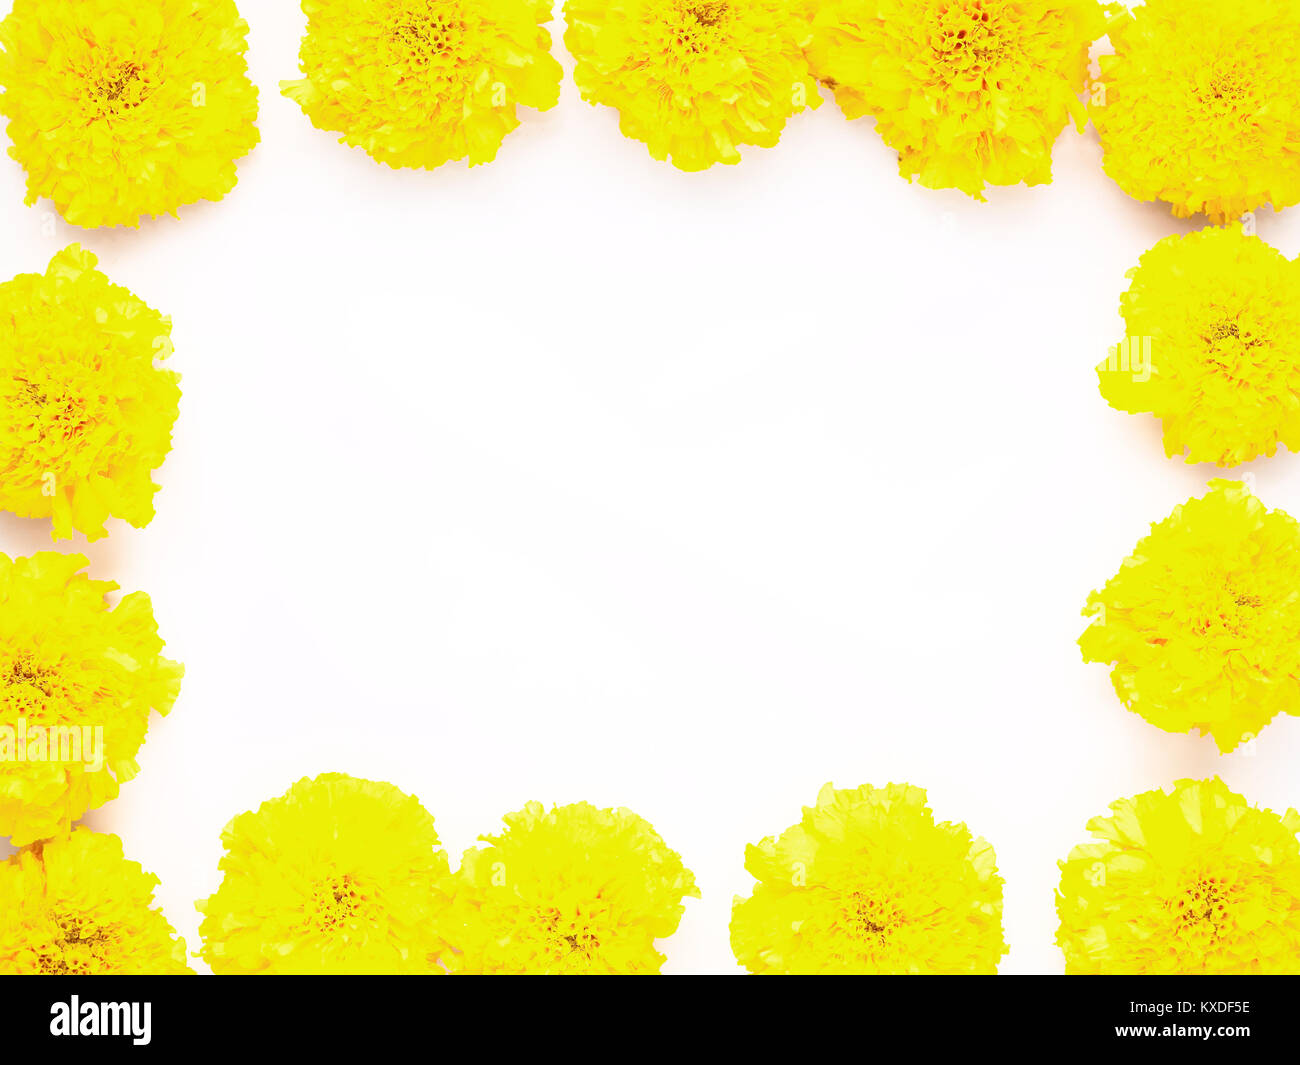 Yellow marigold flower isolated on white background use to worship yellow marigold flower isolated on white background use to worship wisdom god in indian culture by hindus or can be used as health product mightylinksfo